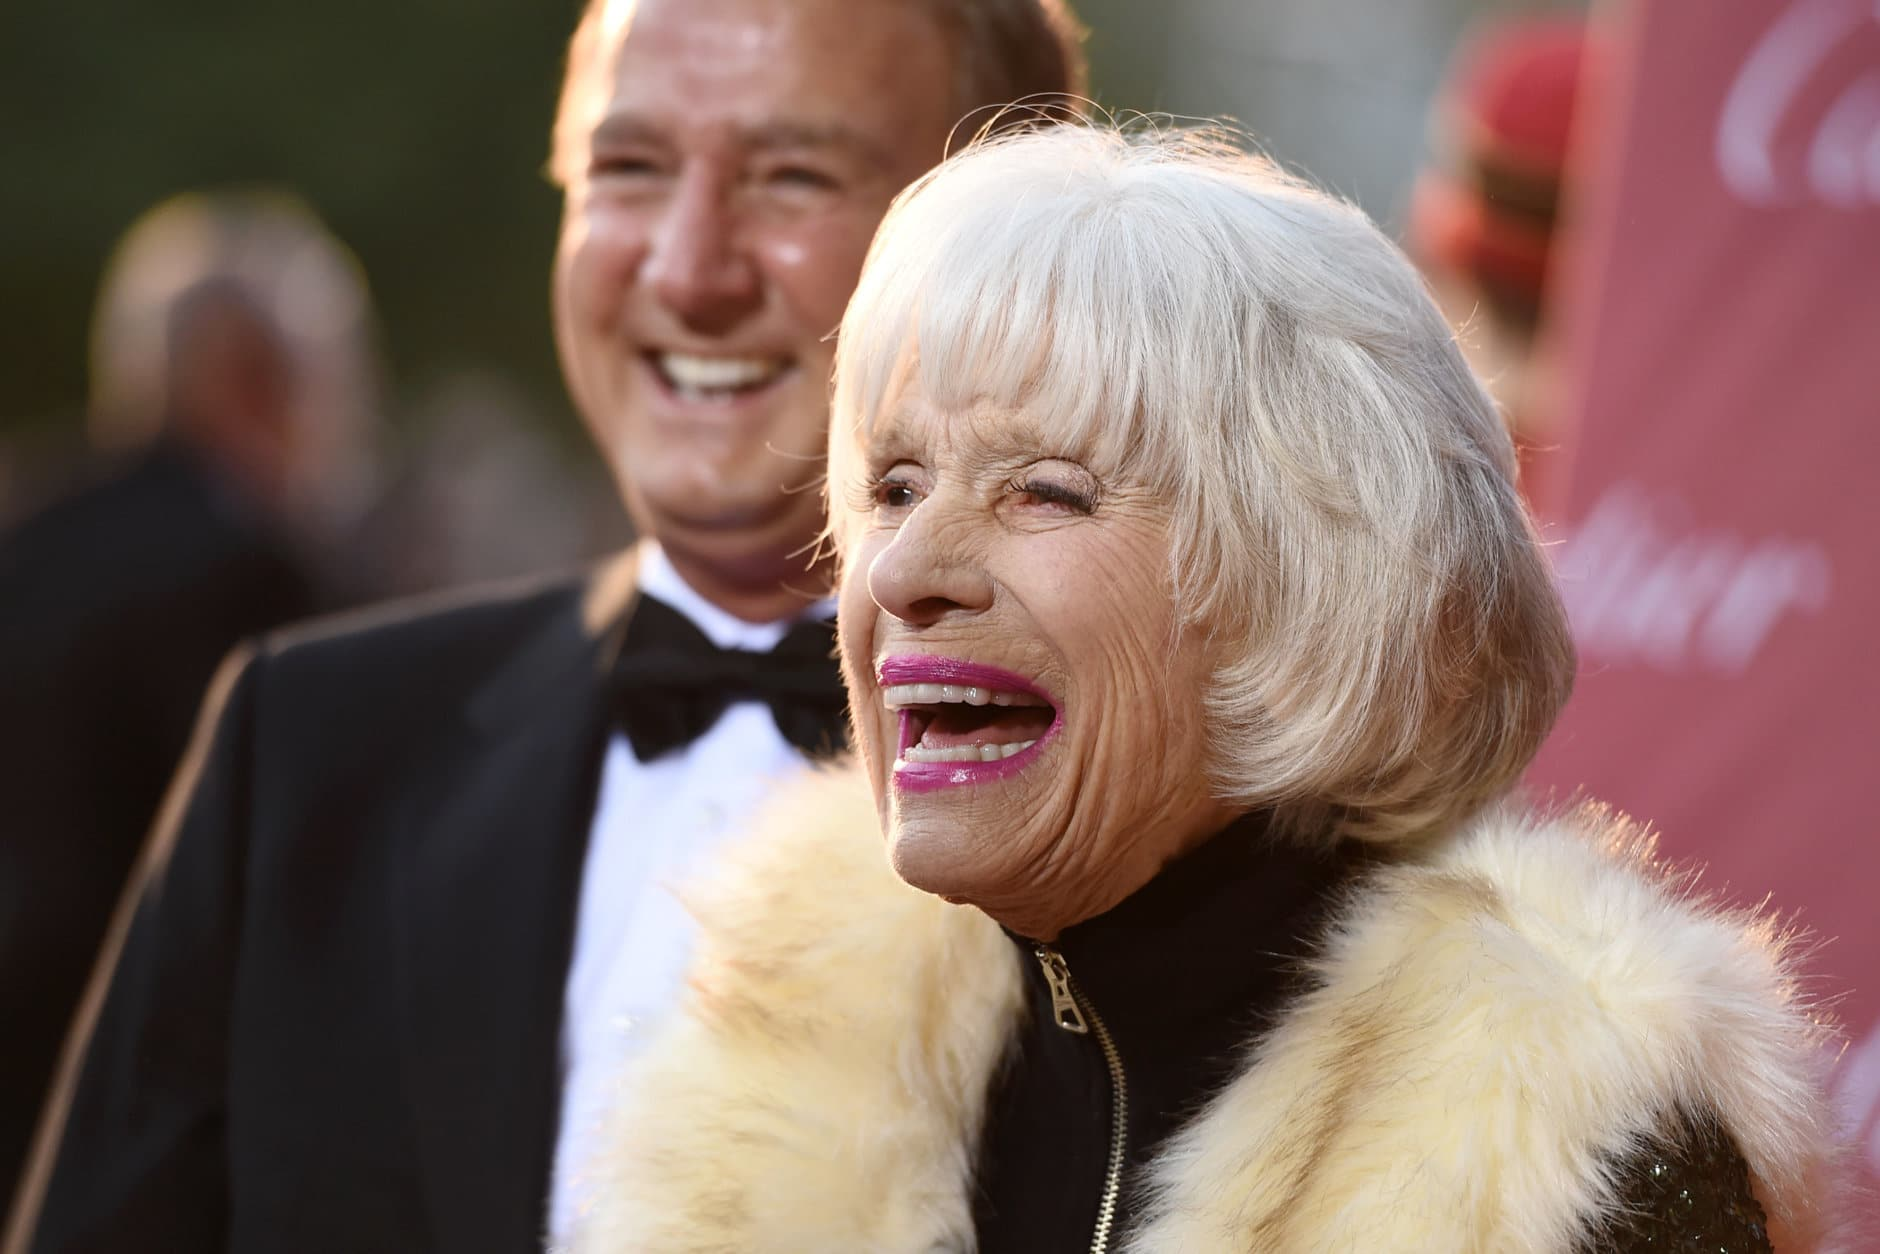 Carol Channing arrives at the 26th annual Palm Springs International Film Festival Awards Gala on Saturday, Jan. 3, 2015, in Palm Springs, Calif. (Photo by Jordan Strauss/Invision/AP)